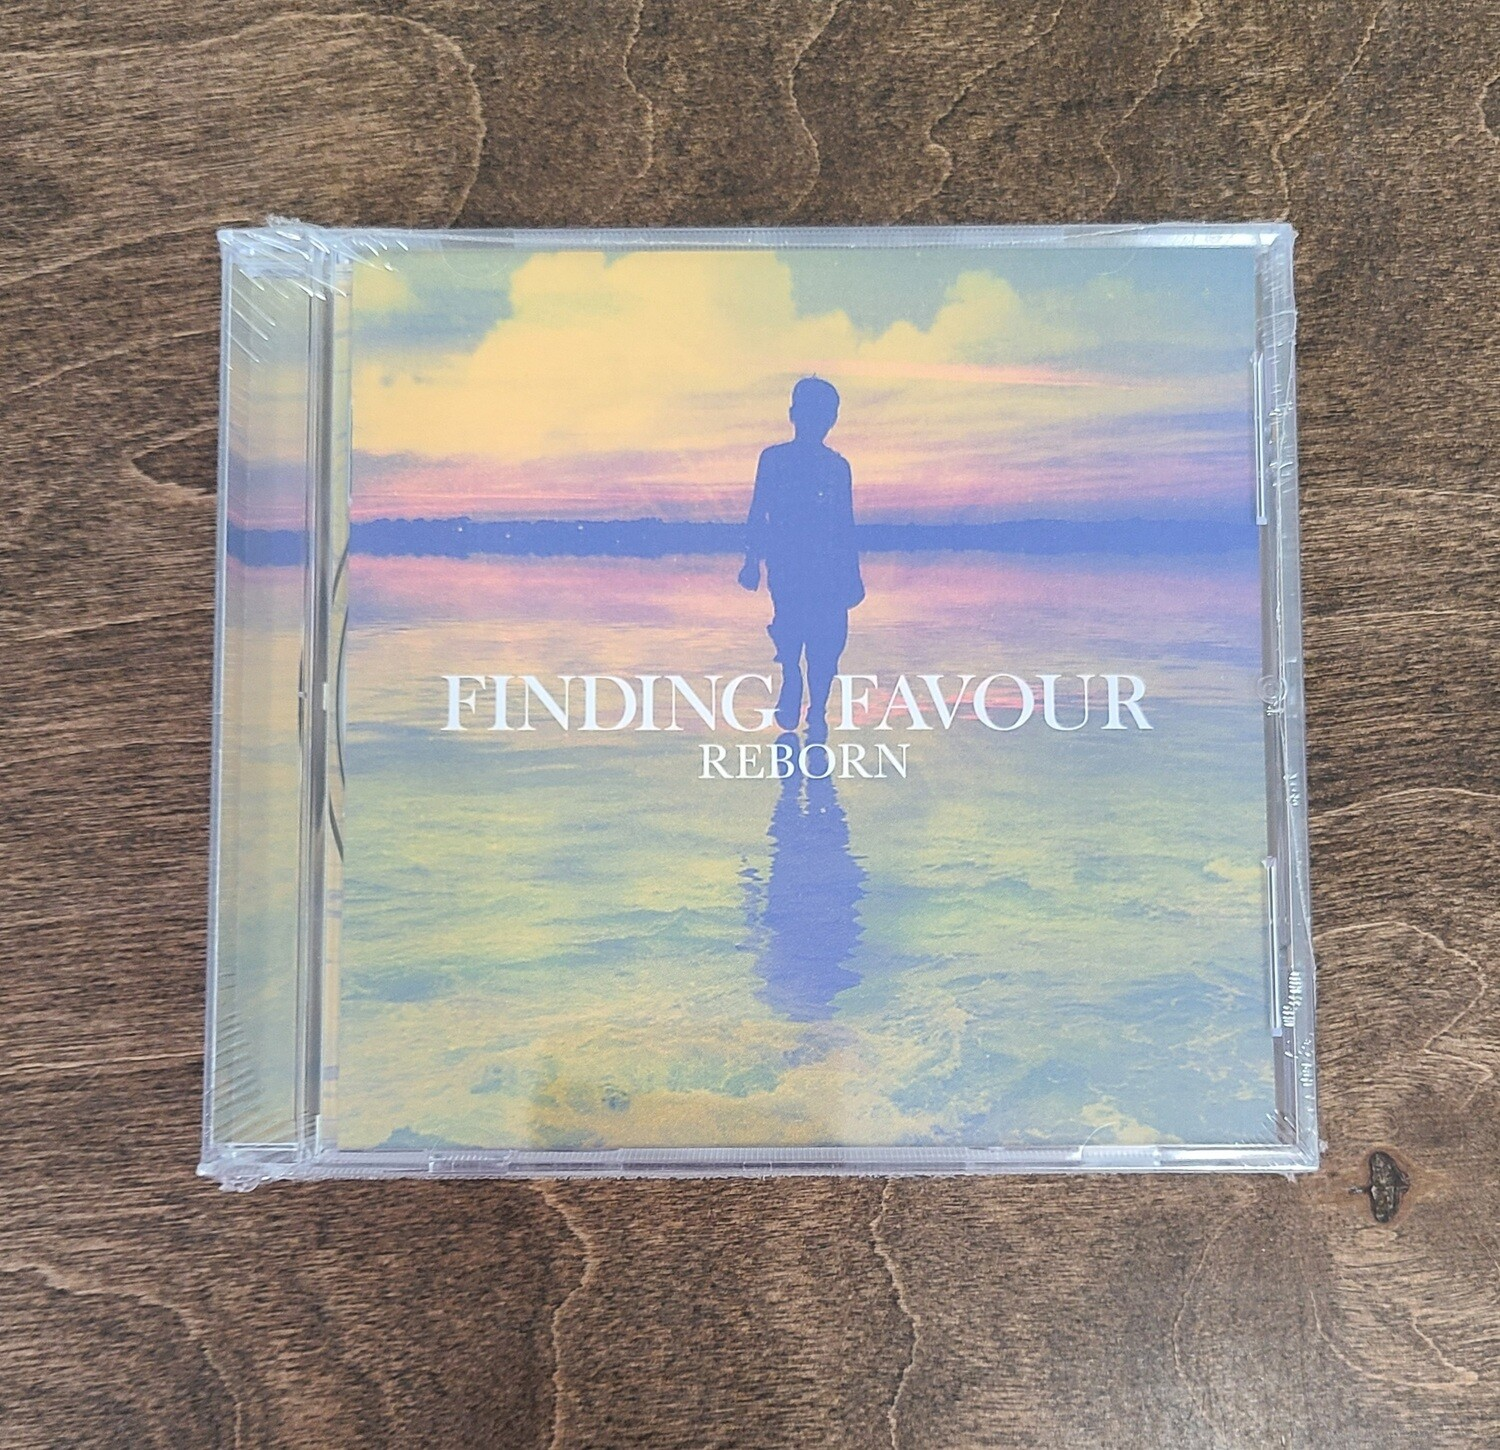 Reborn by Finding Favour CD